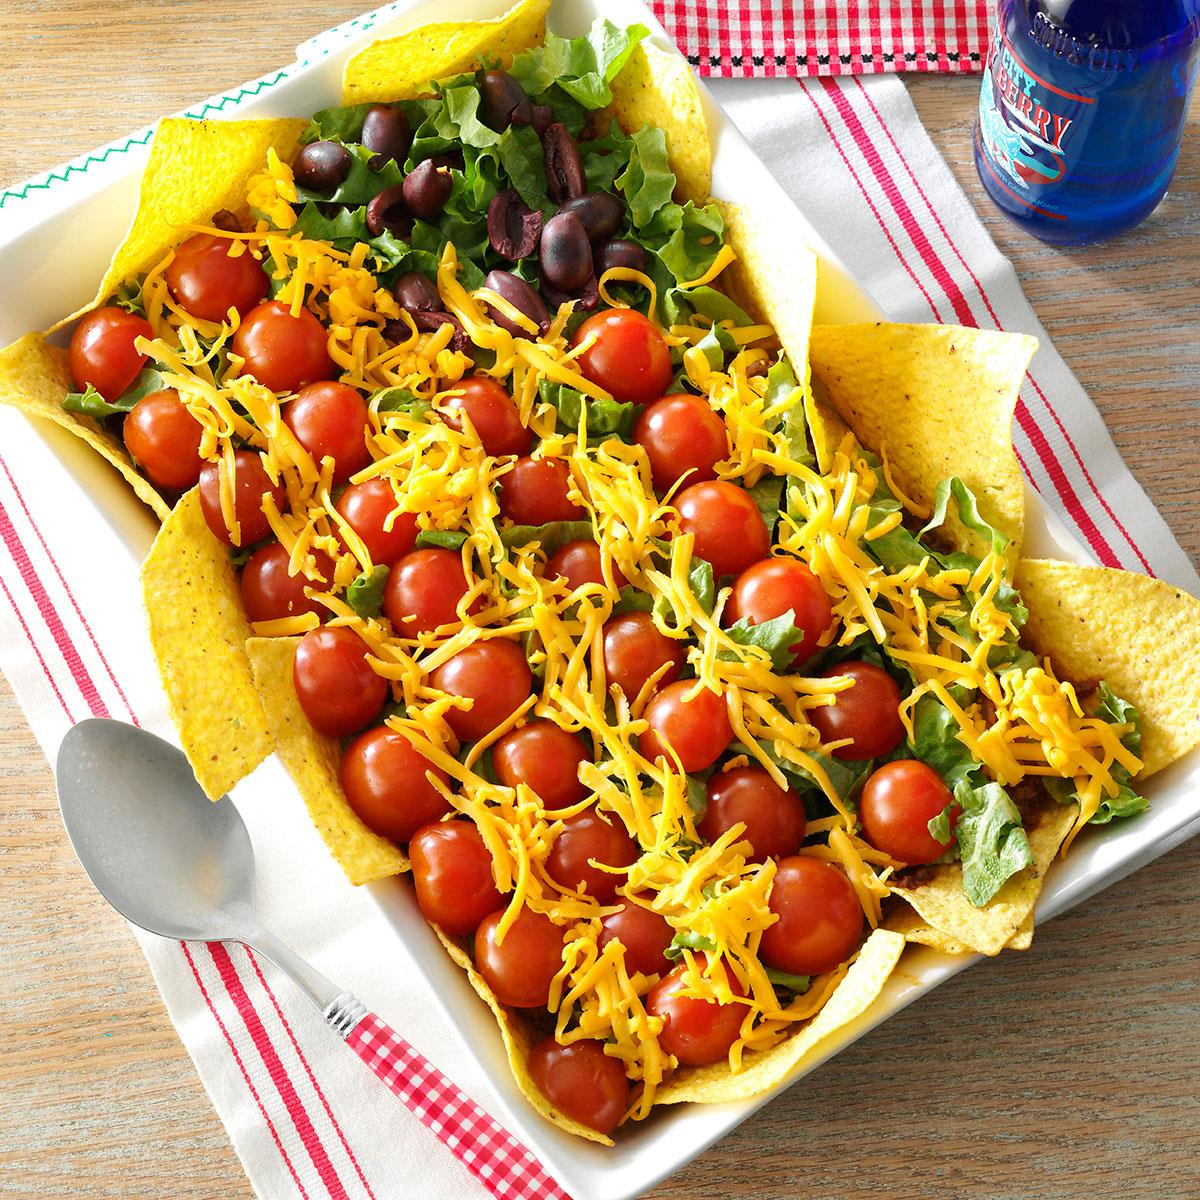 4Th Of July Appetizers And Side Dishes  Patriotic Taco Salad Recipe